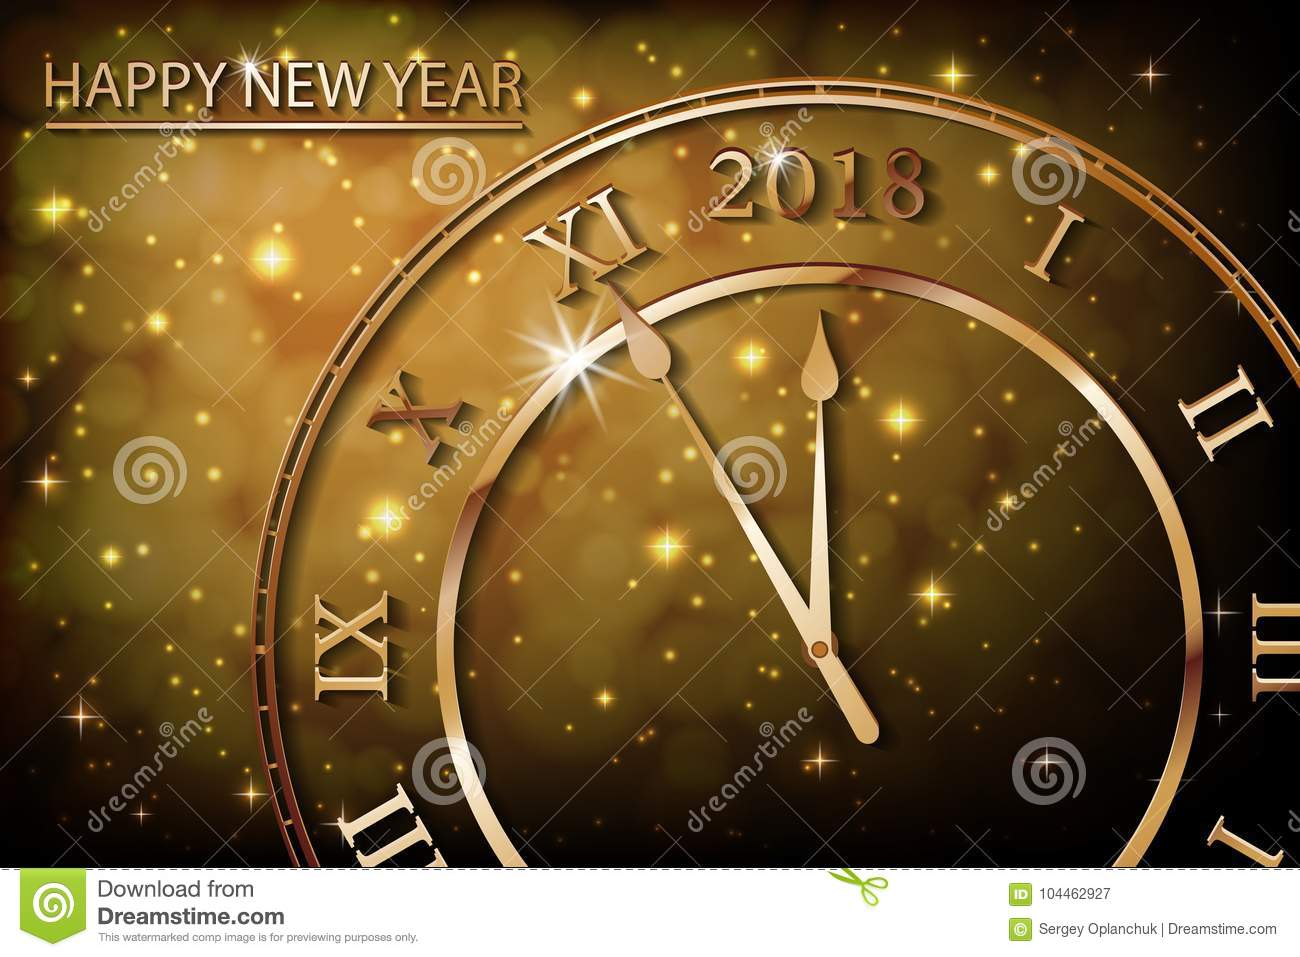 happy new 2018 year with bokeh and lens flare pattern in vintage color style background